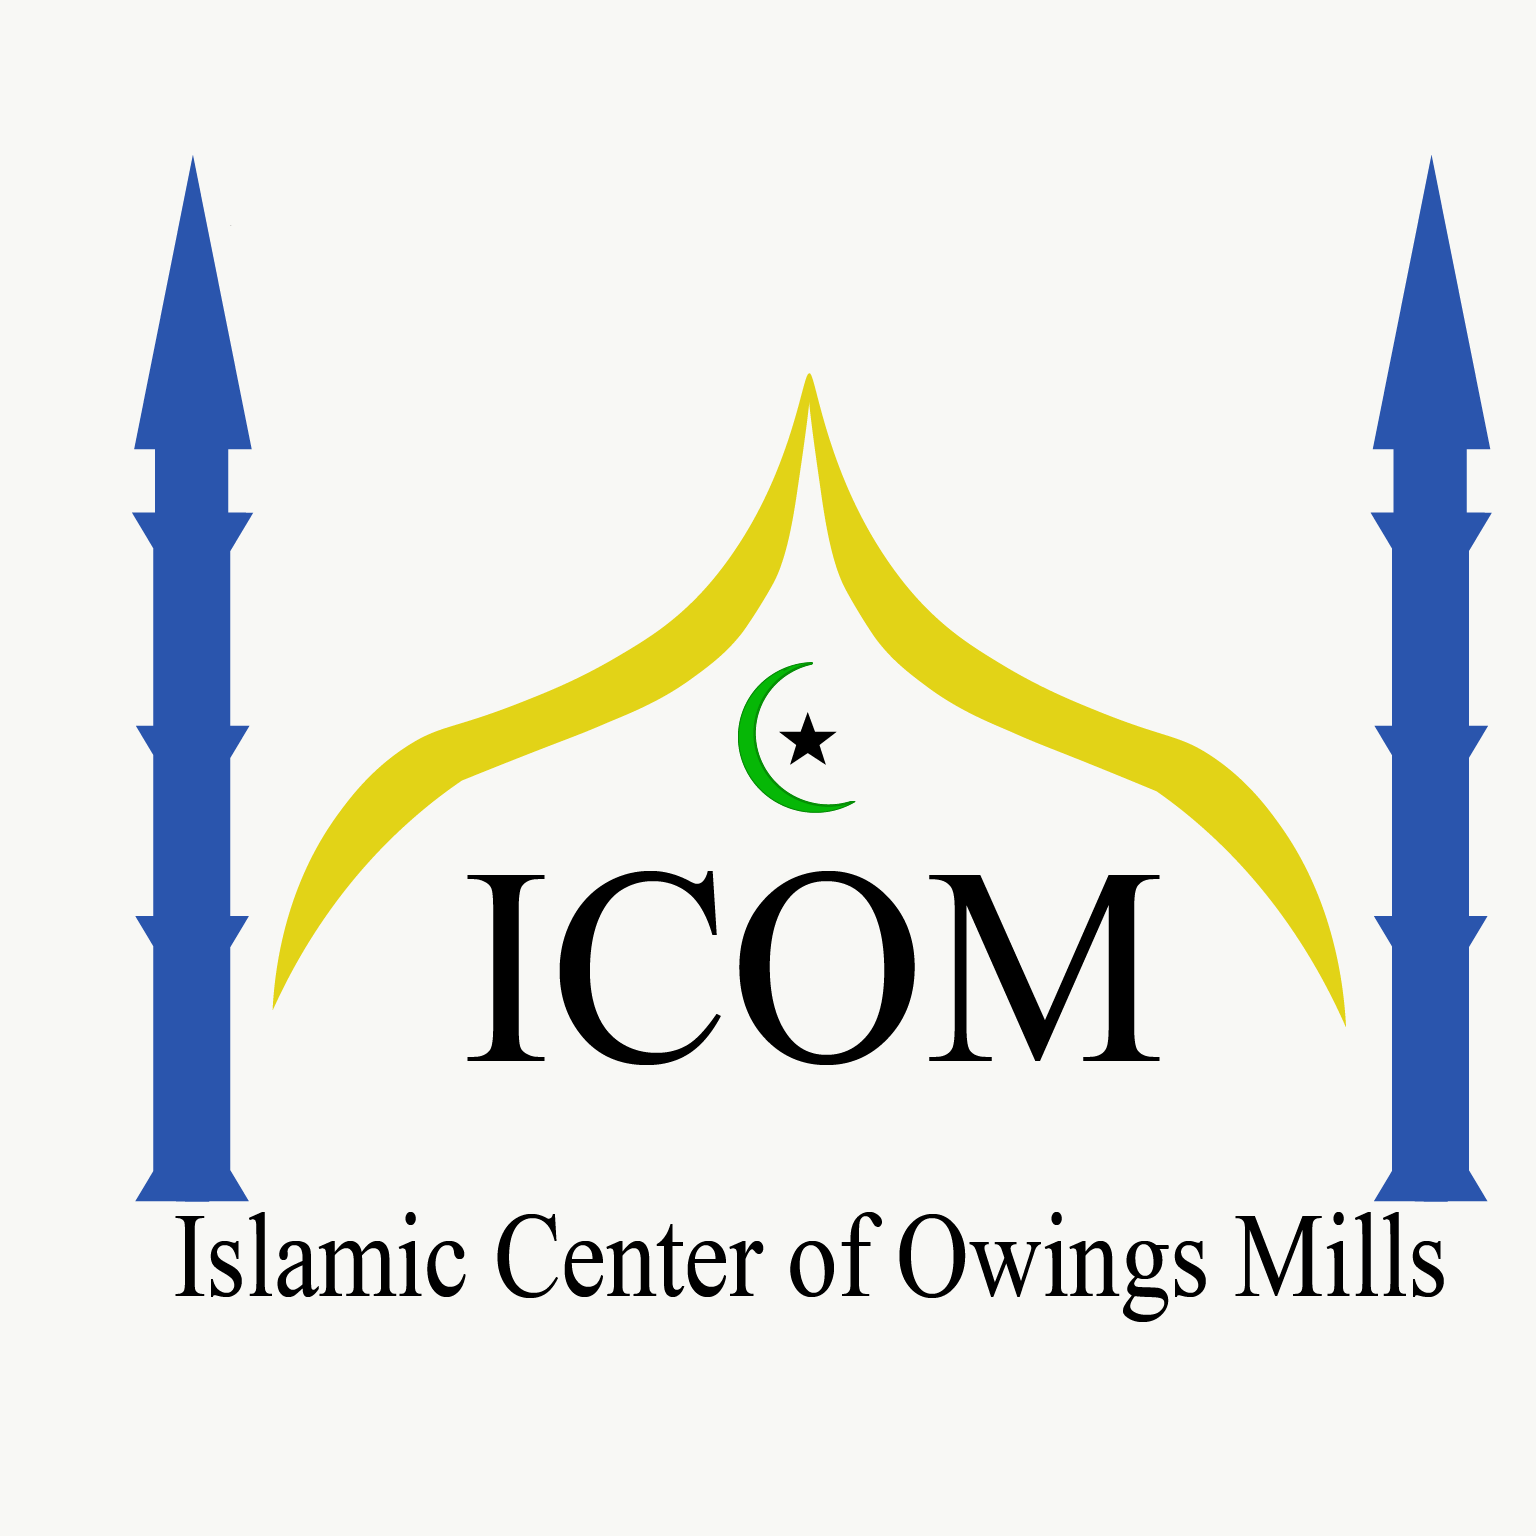 muslim singles in center junction Find nearby mosques (masjids), islamic centers, muslim owned businesses and organizations all over the world on the map add your new mosques and places to the islamicfinder.